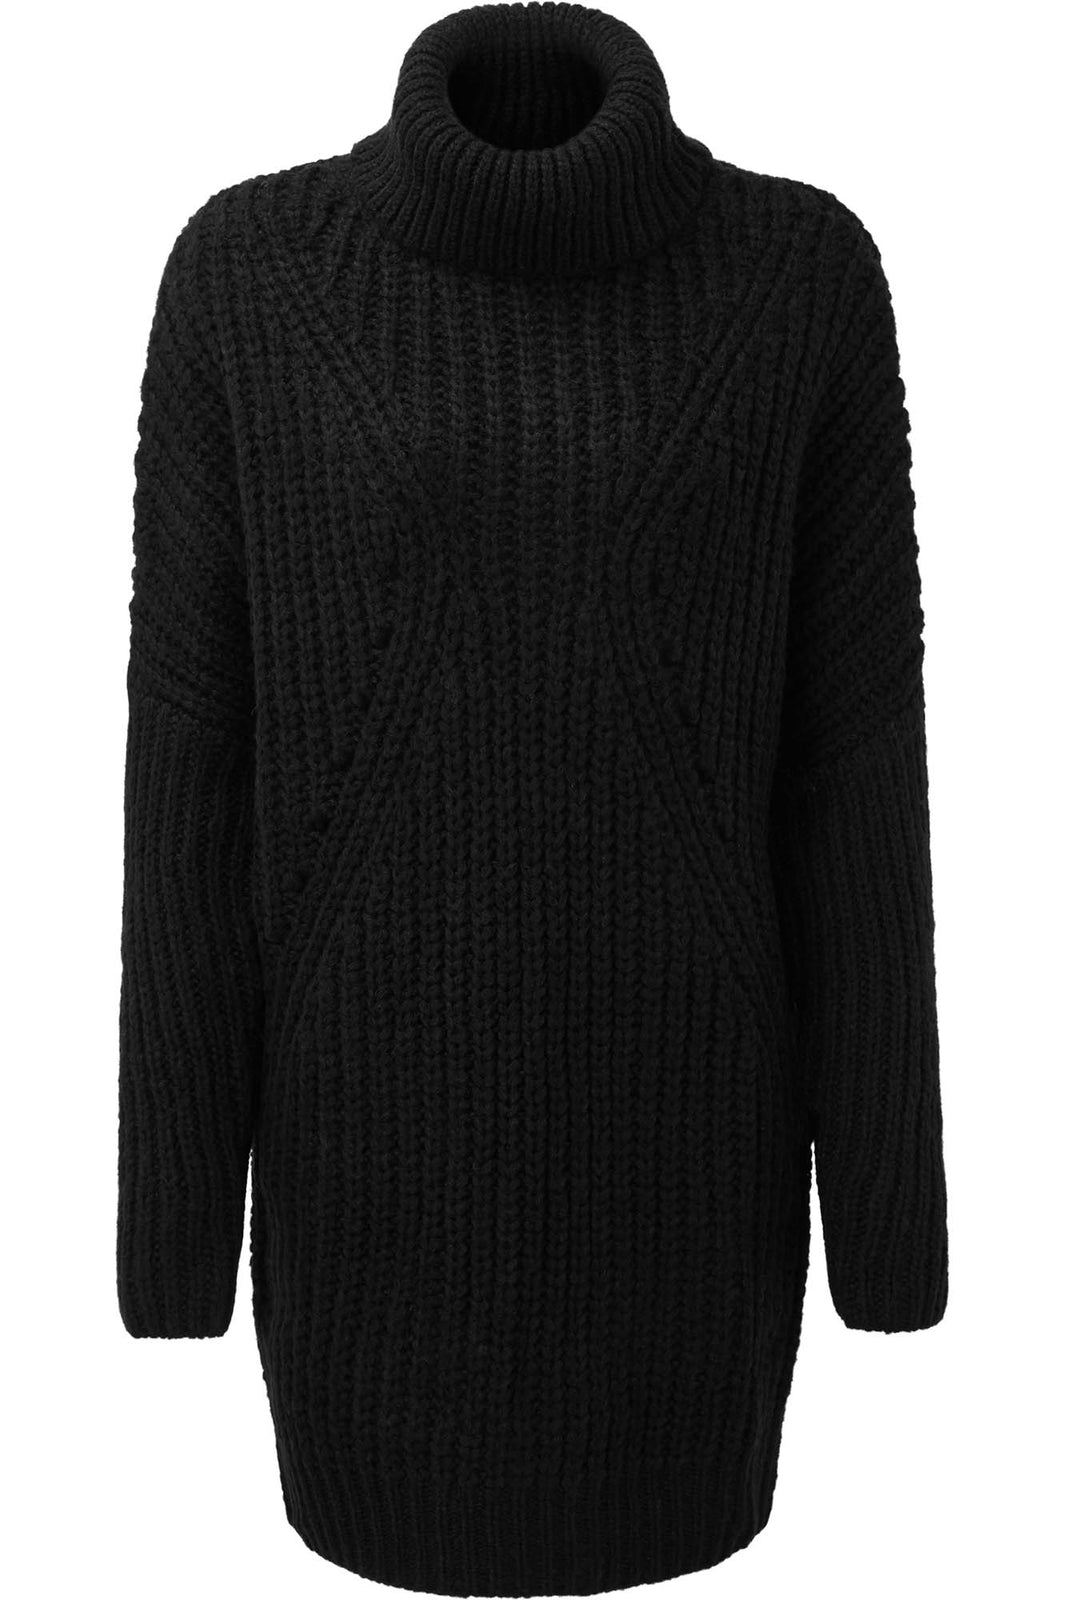 Aeon Knit Sweater